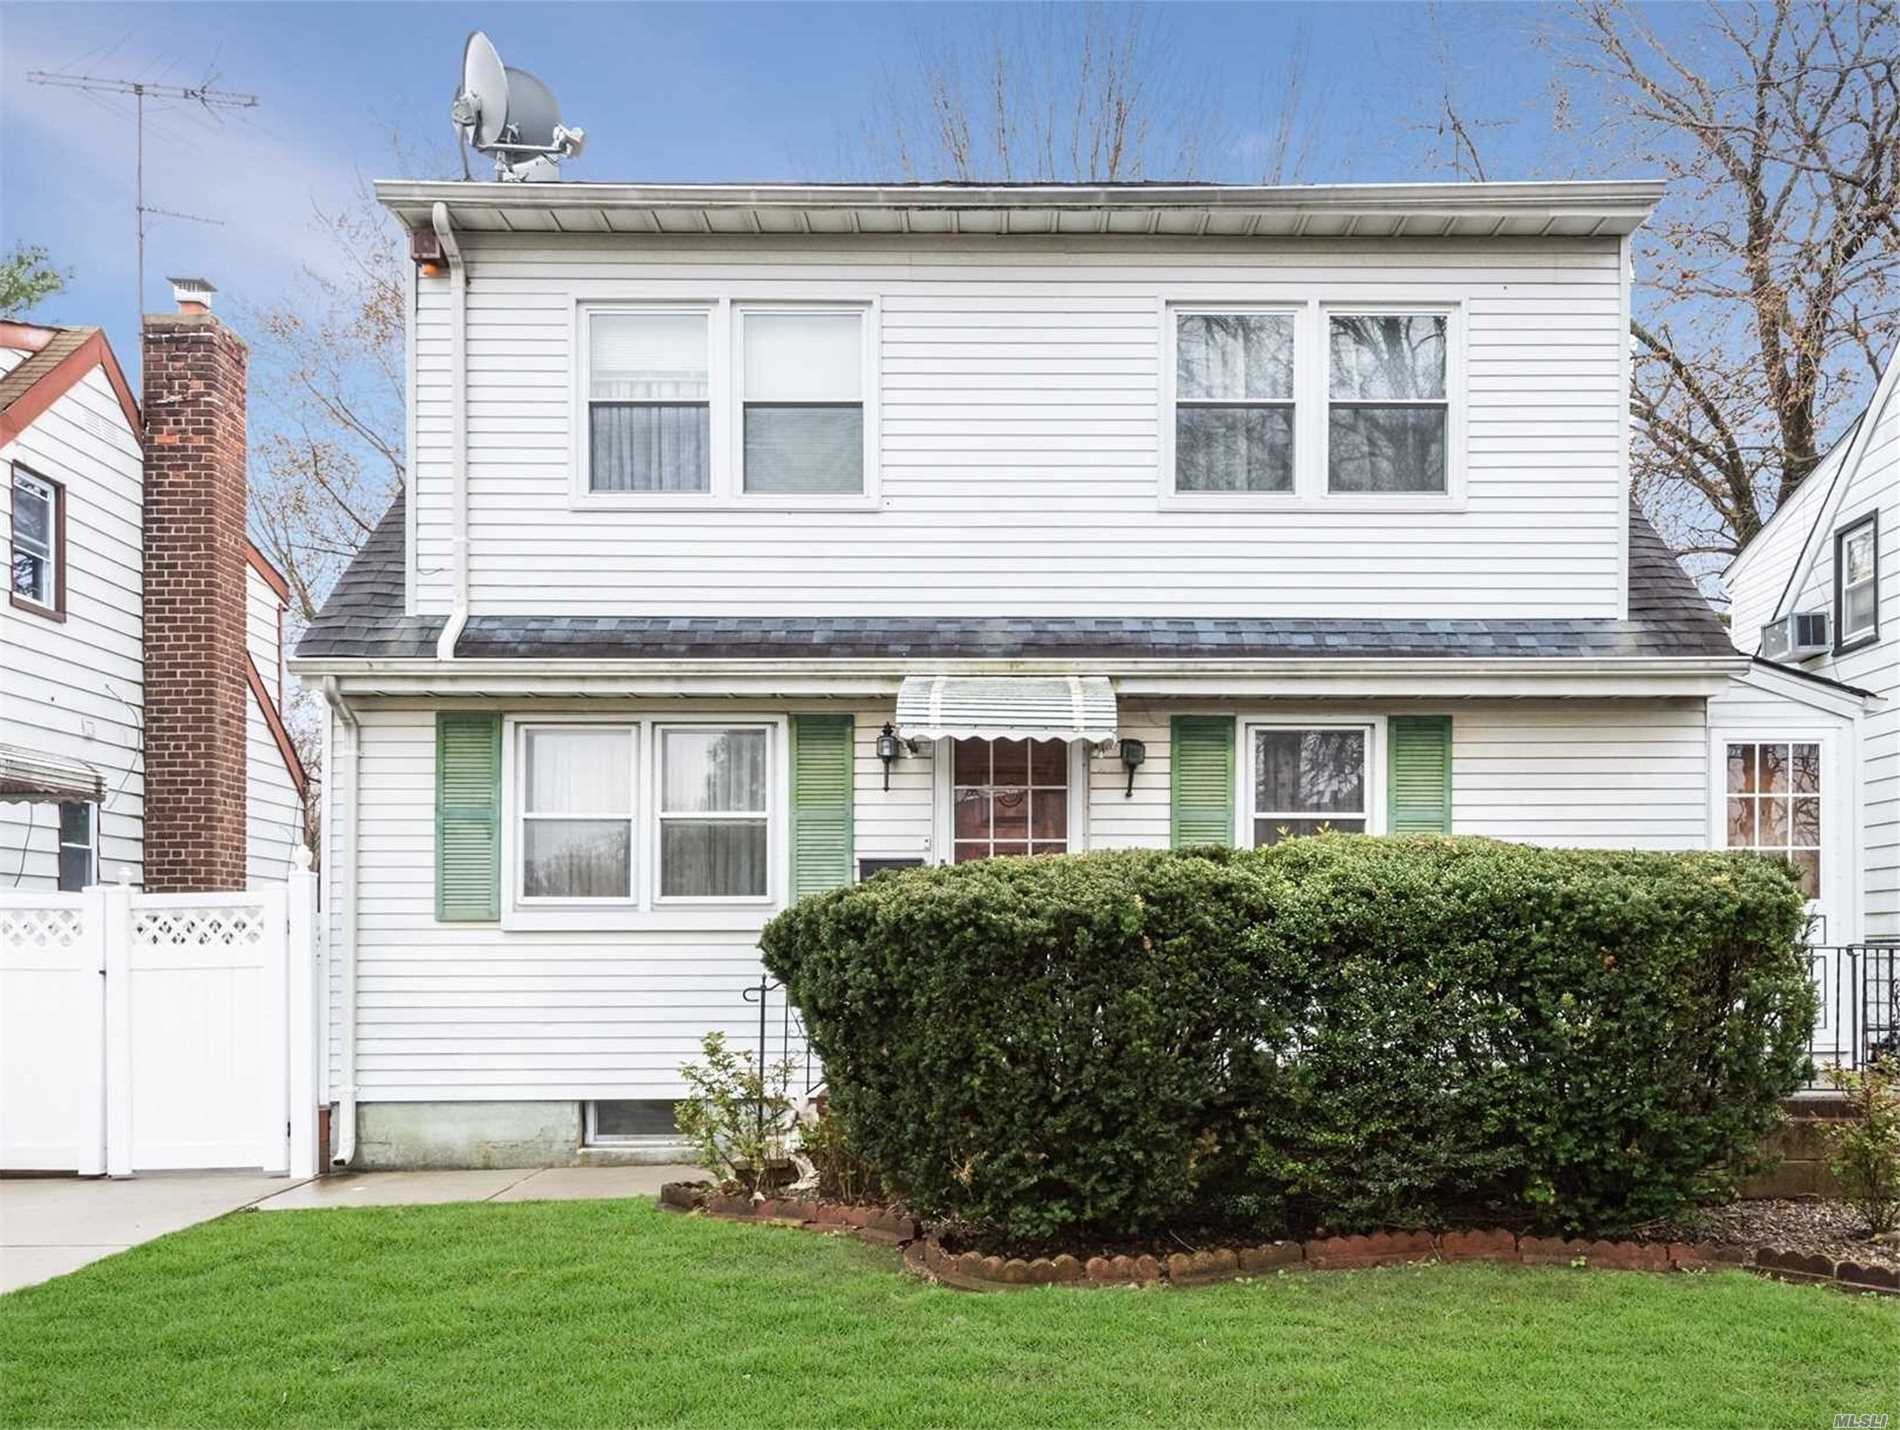 House Located At Right On Boundary Line With Flushing, House Features 4 Beds, 2.5 Bath, 2 Kitchen, Hardwood Throughout, Mother & Daughter Floor Layout. House Fully Renovated Years Ago, New Boiler. 1/2 Block To Kissena Park & Bus Q65. House Close To Supermarket, Highway, Zoned For Top School District ( 26 District )